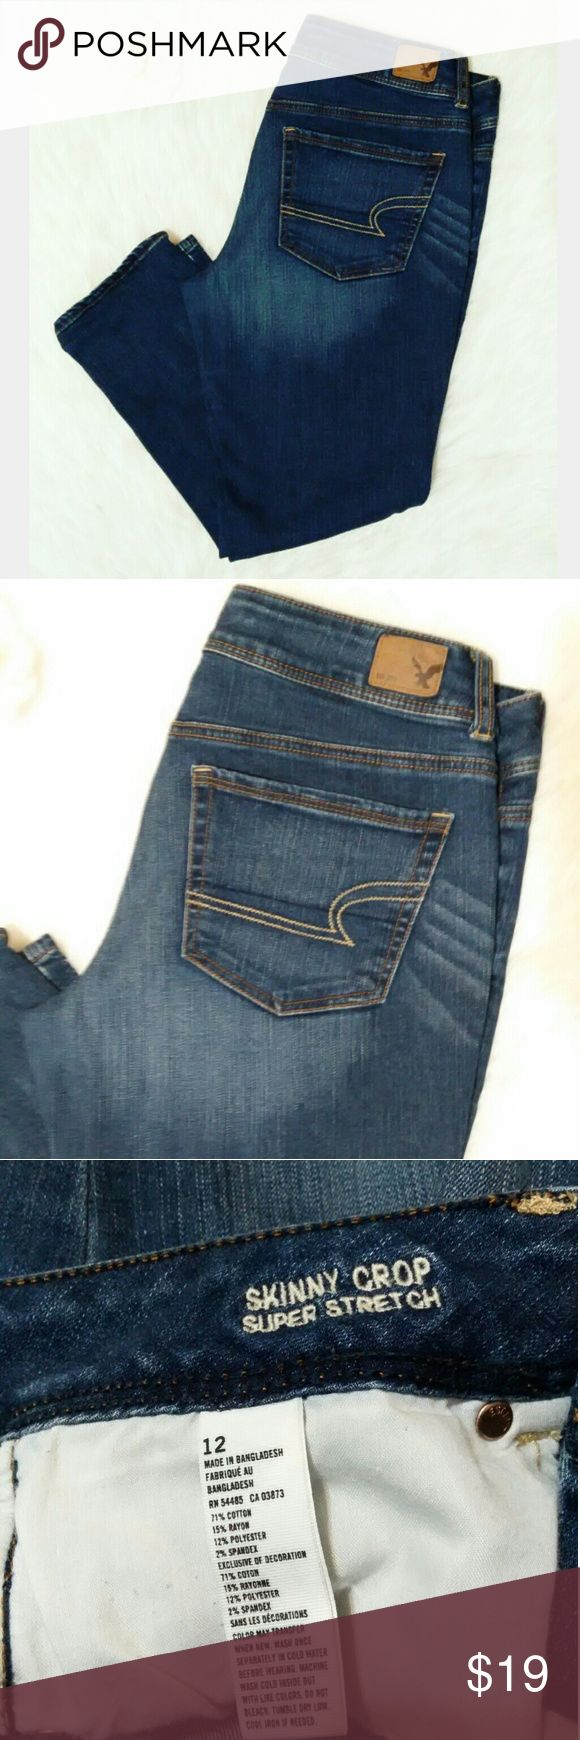 American Eagle Skinny Crop Jeans Like New! American Eagle Skinny Crop Super Stretch Jeans. These quality made crop length jeans will be your new favorites!  Please feel free to ask any questions you may have :) As always, I ship within 24 hours!! American Eagle Outfitters Jeans Ankle & Cropped